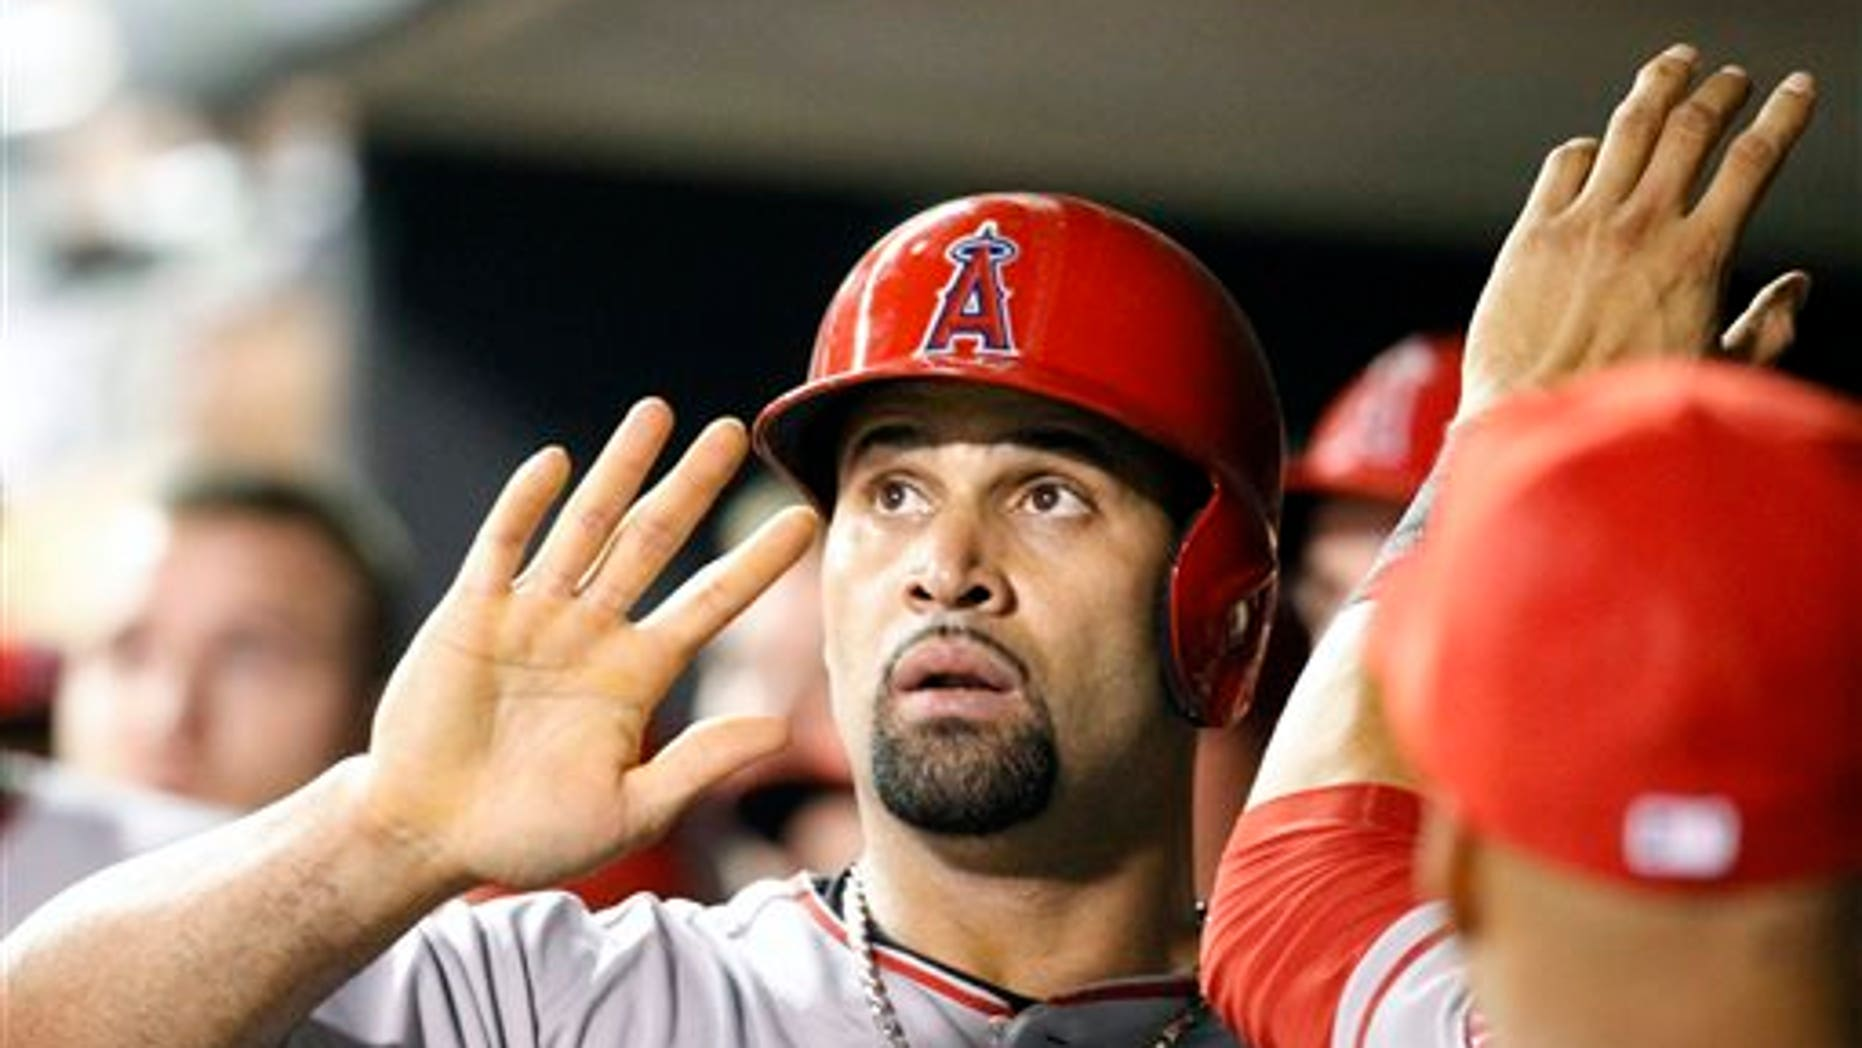 Los Angeles Angels' Albert Pujols is congratulated by teammates in the dugout after scoring on a single by Howie Kendrick off Minnesota Twins relief pitcher Anthony Swarzak during the ninth inning of a baseball game in Minneapolis, Saturday, Sept. 6, 2014. The Angels won 8-5. (AP Photo/Ann Heisenfelt)